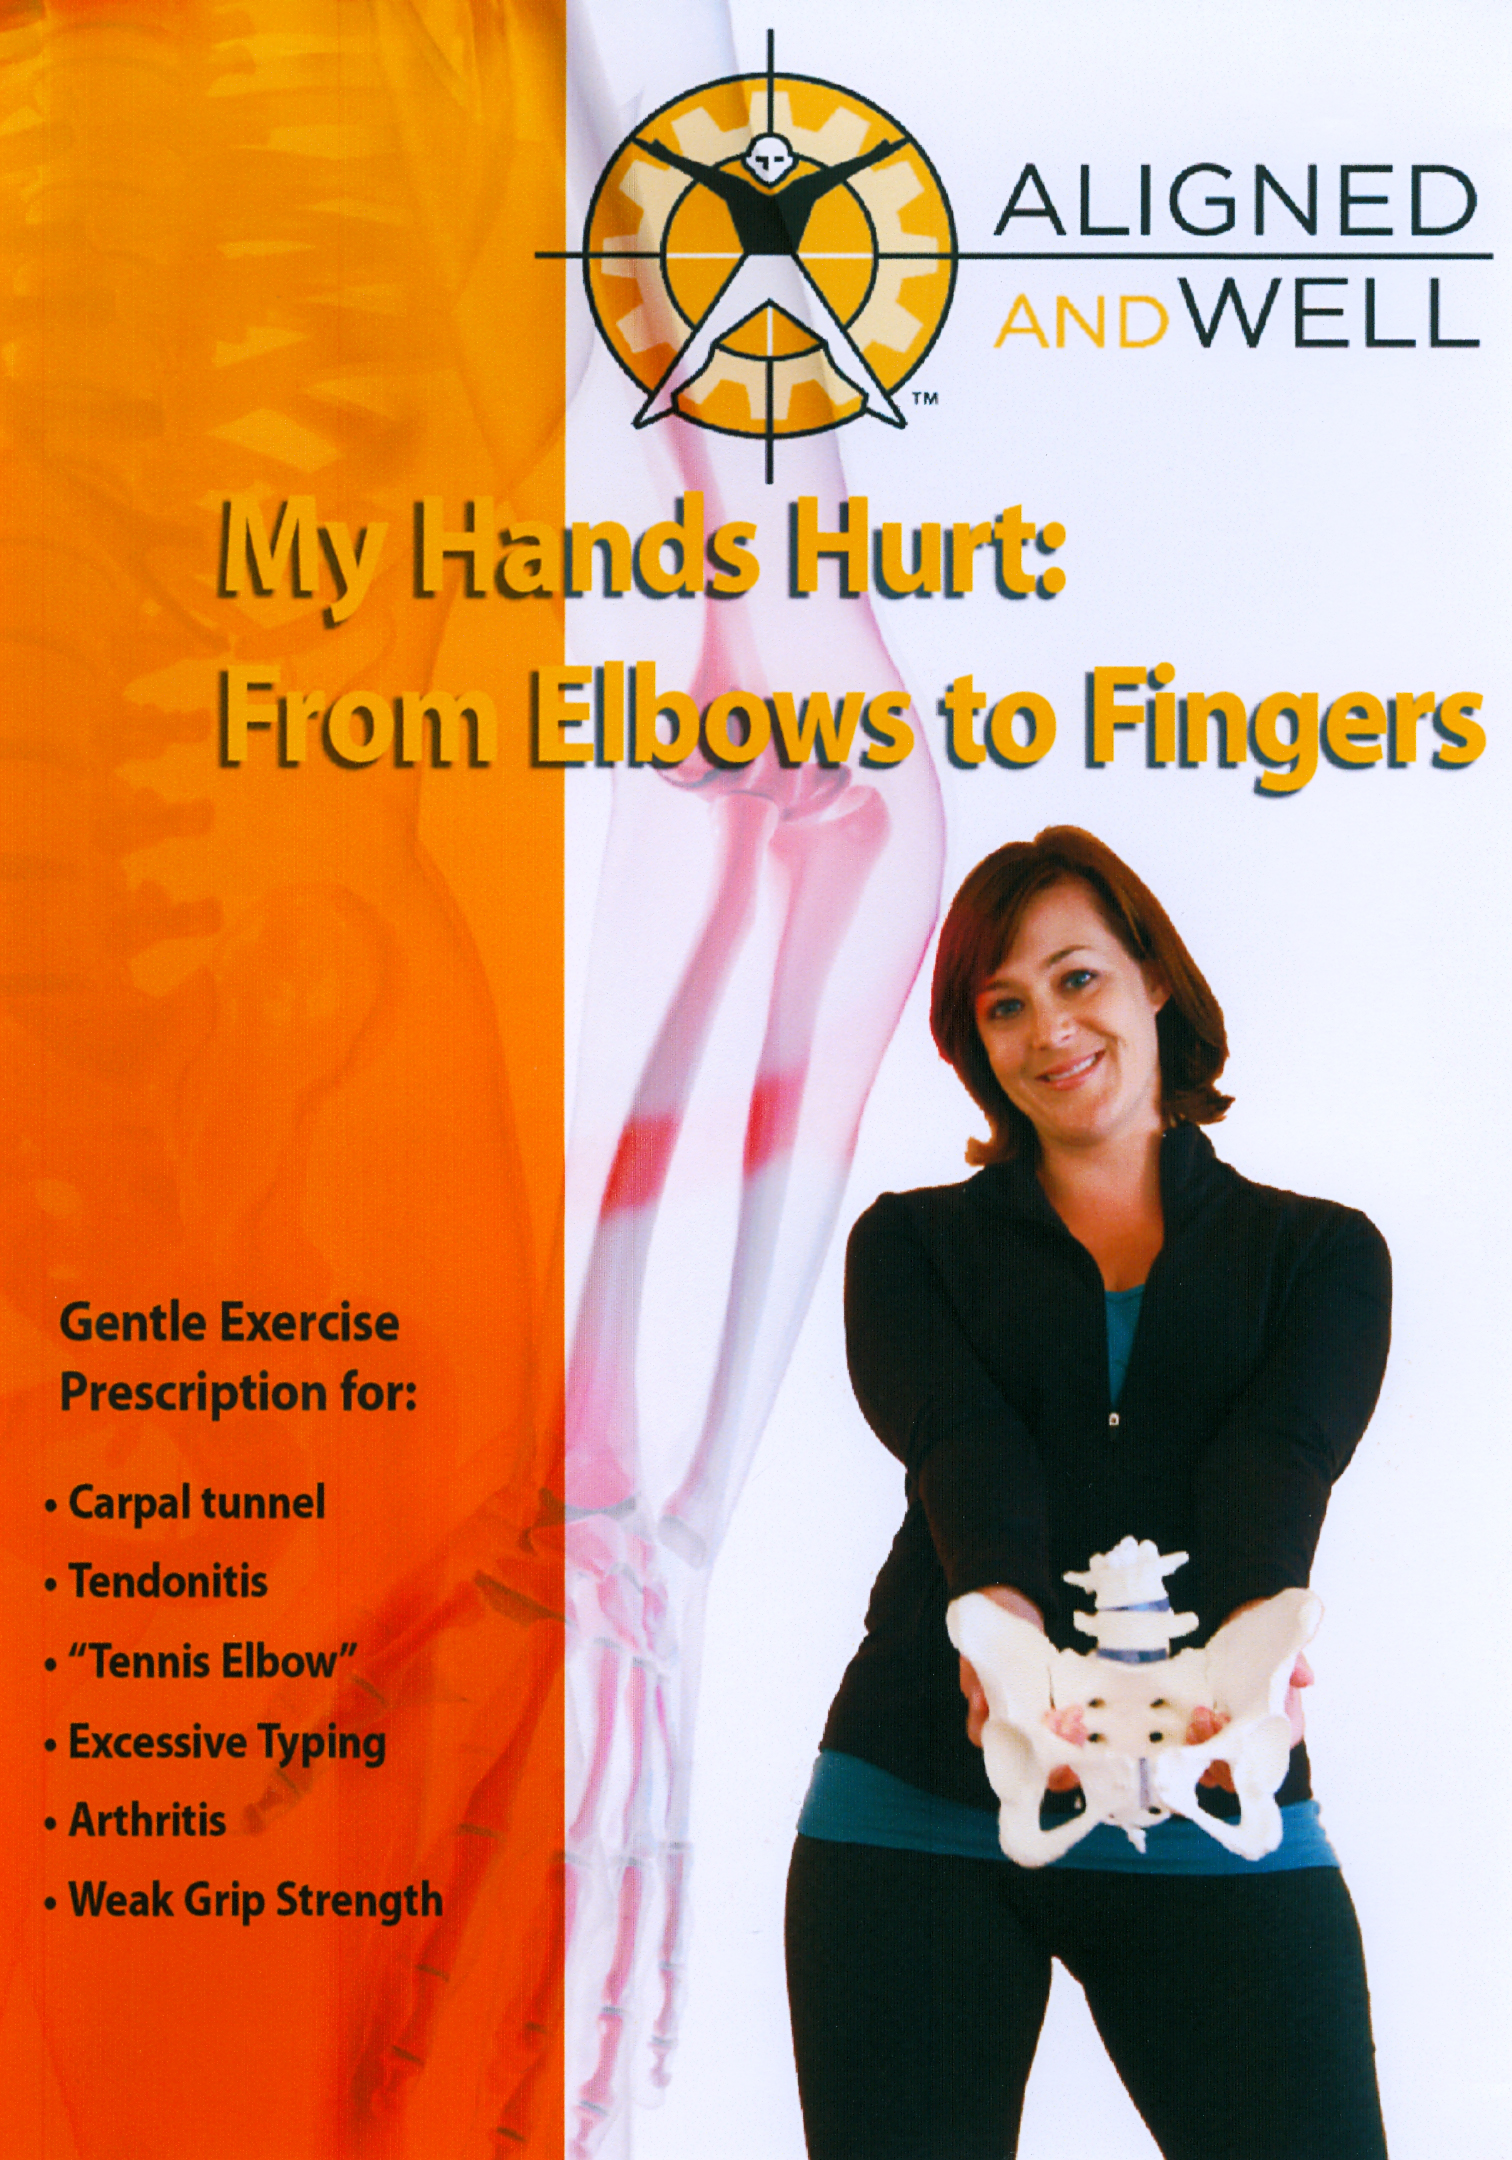 Aligned and Well: My Hands Hurt: From Elbows to Fingers